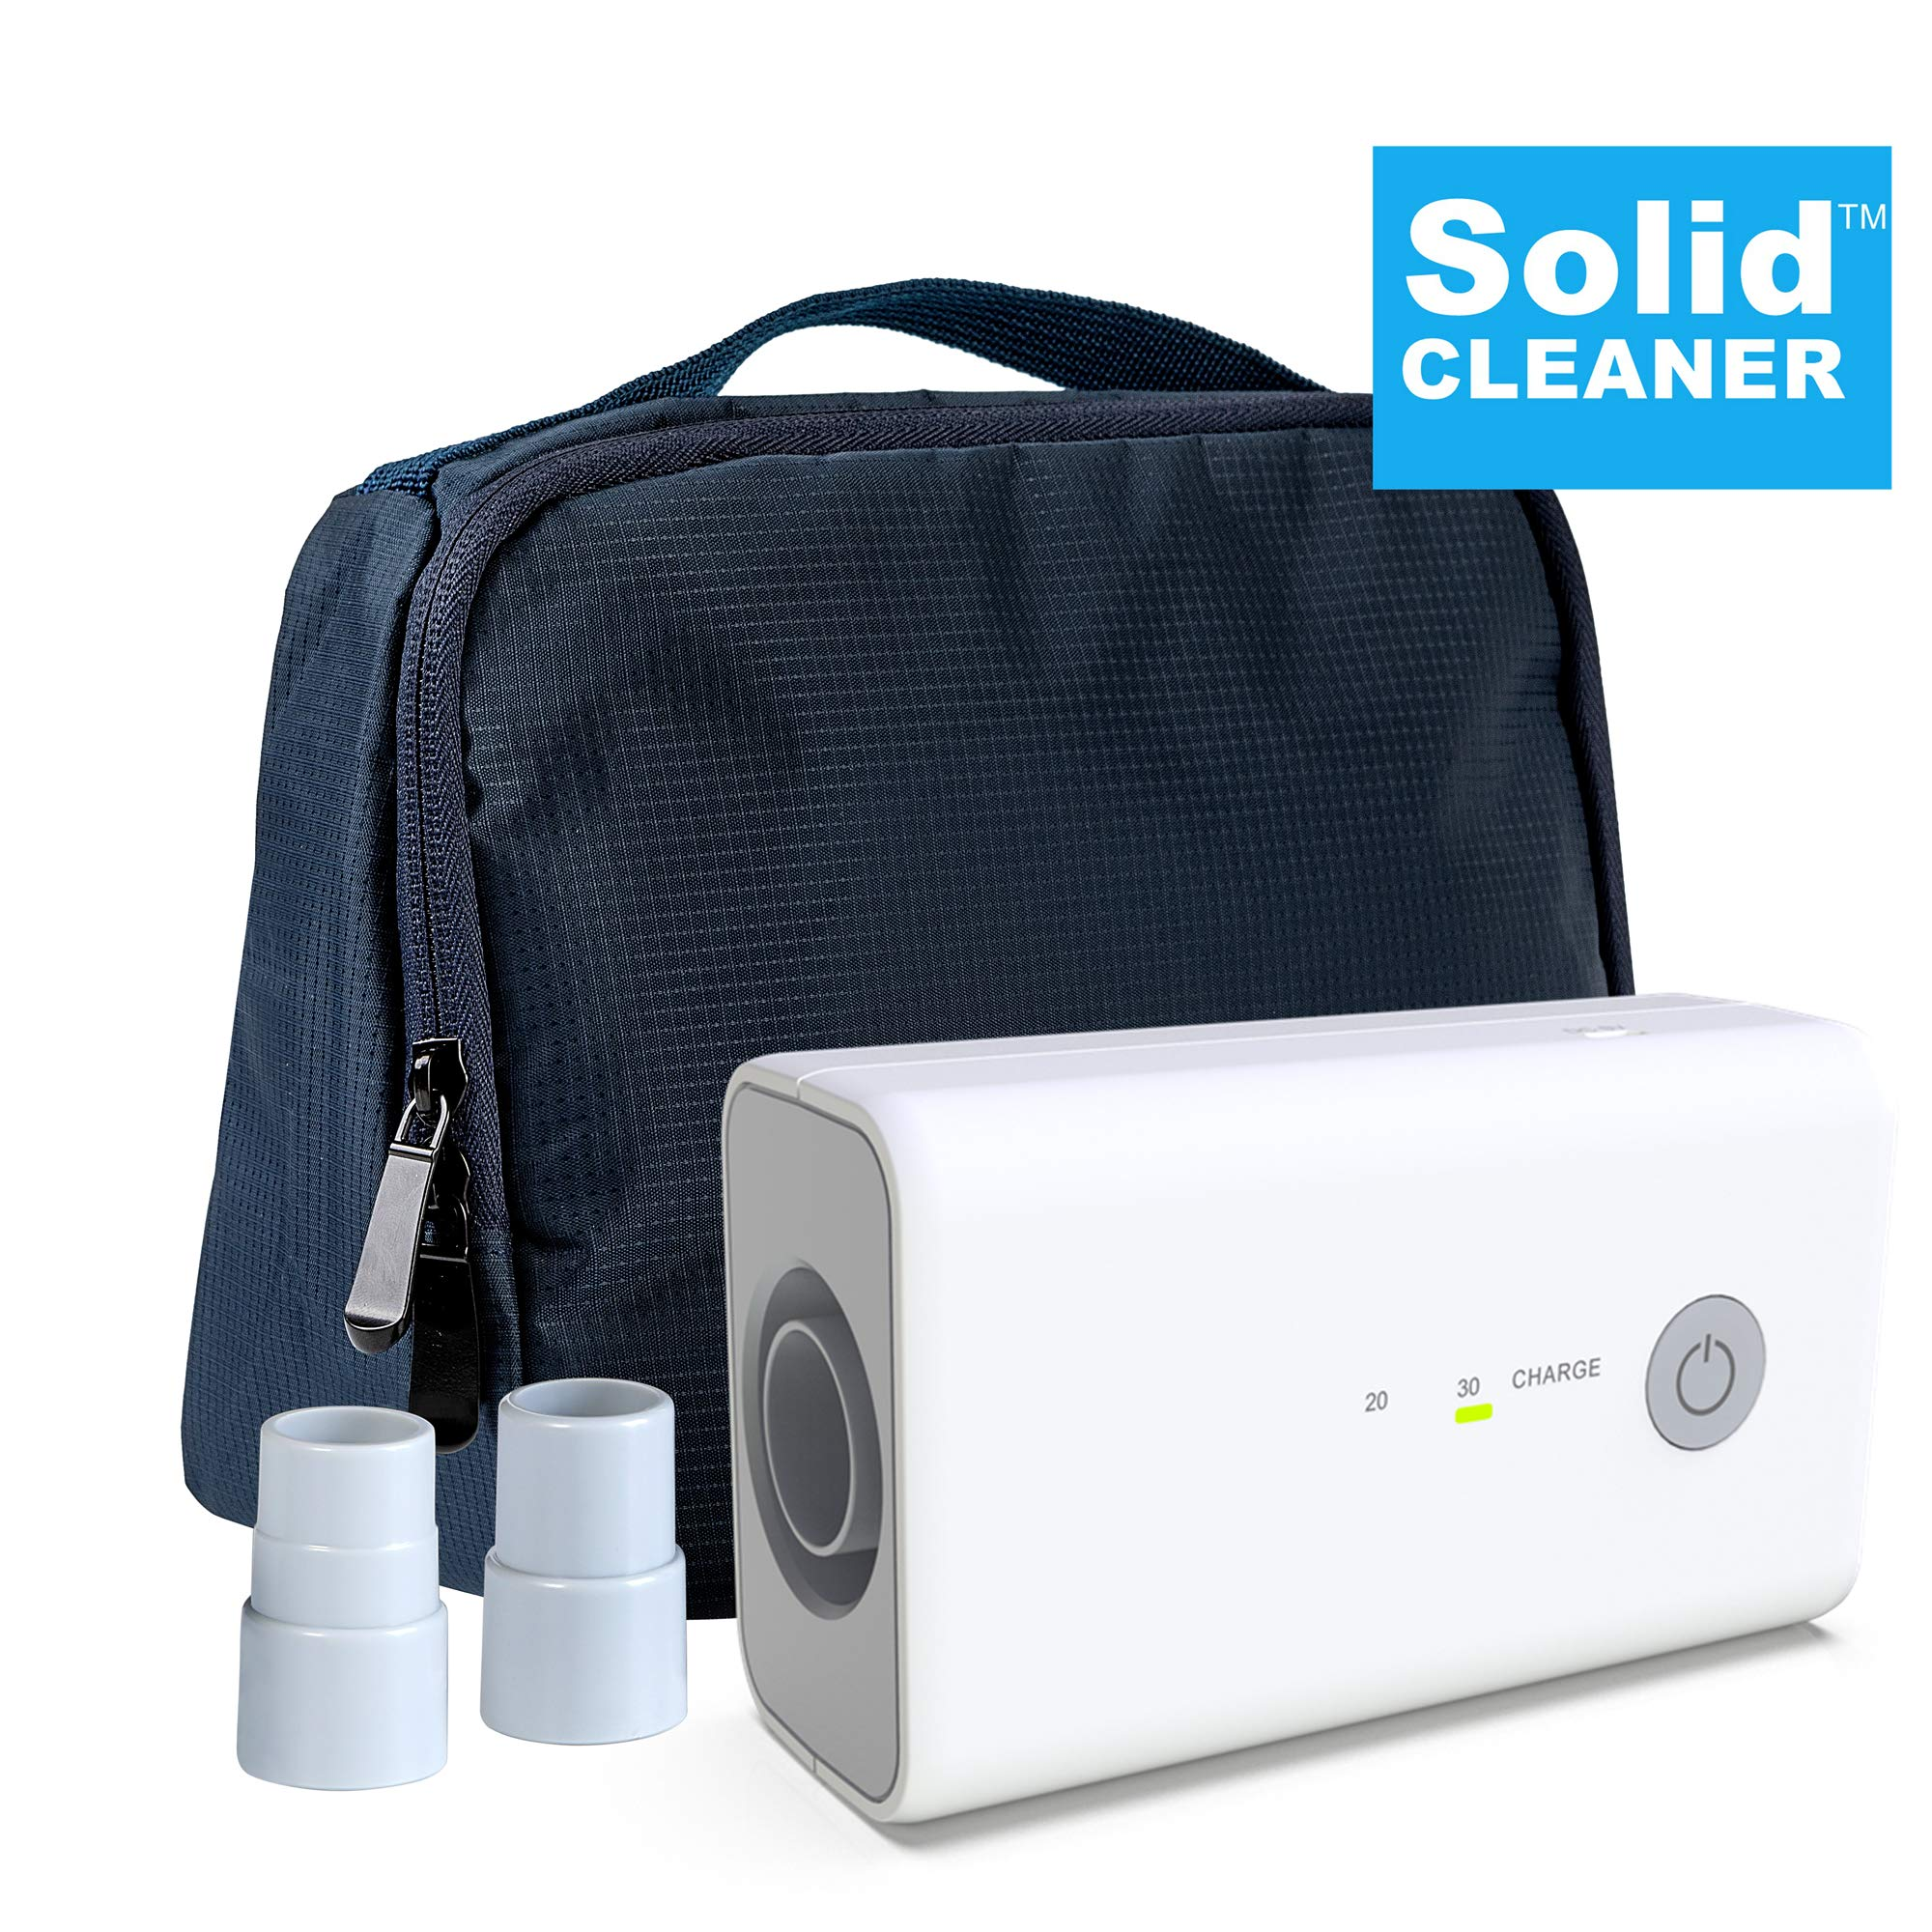 SolidCLEANER CPAP Cleaner Includes 2 Heated Hose Adapters by SolidCLEANER (Image #1)